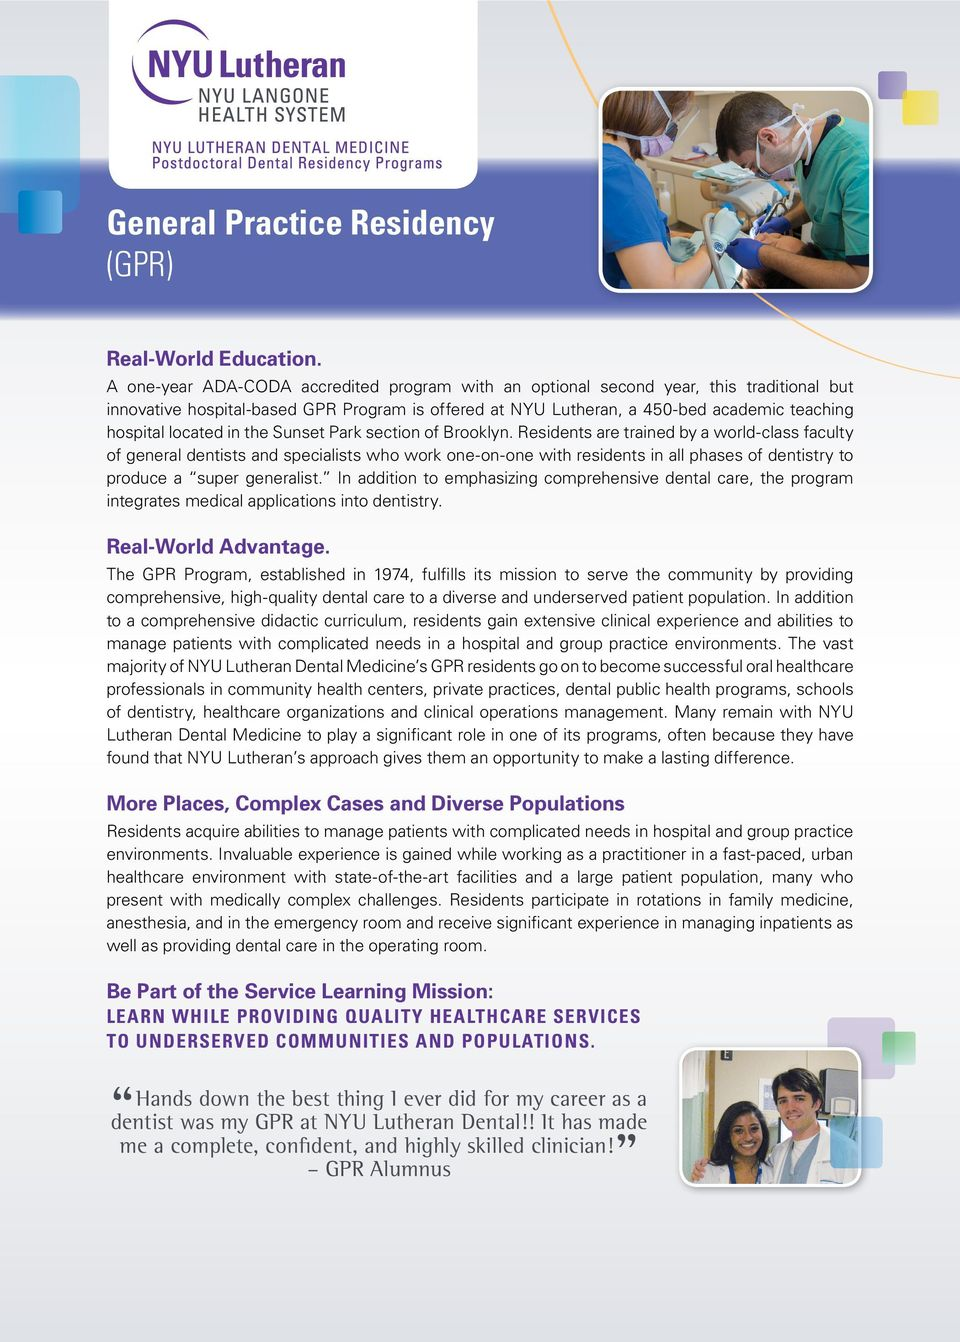 NYU Lutheran Dental Medicine currently offers six programs